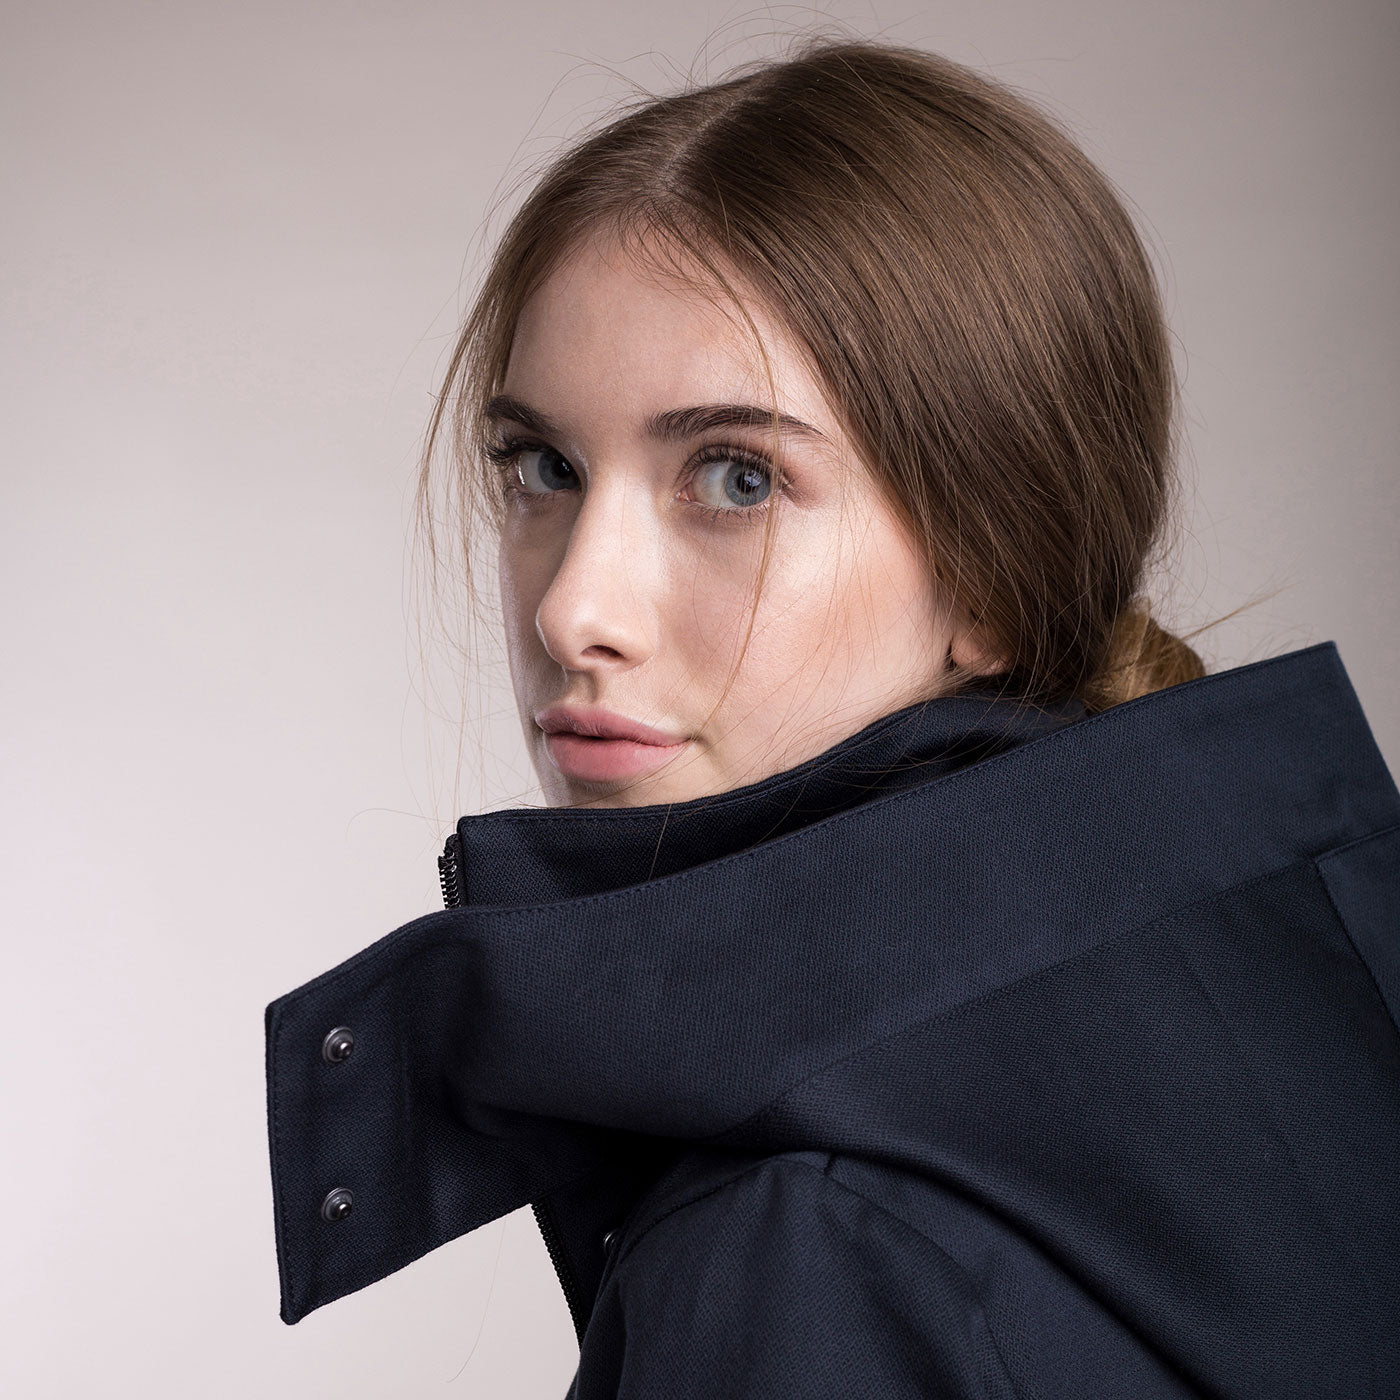 The model wears a dark blue sustainable organic cotton hooded water-resistant coat, detail hood.